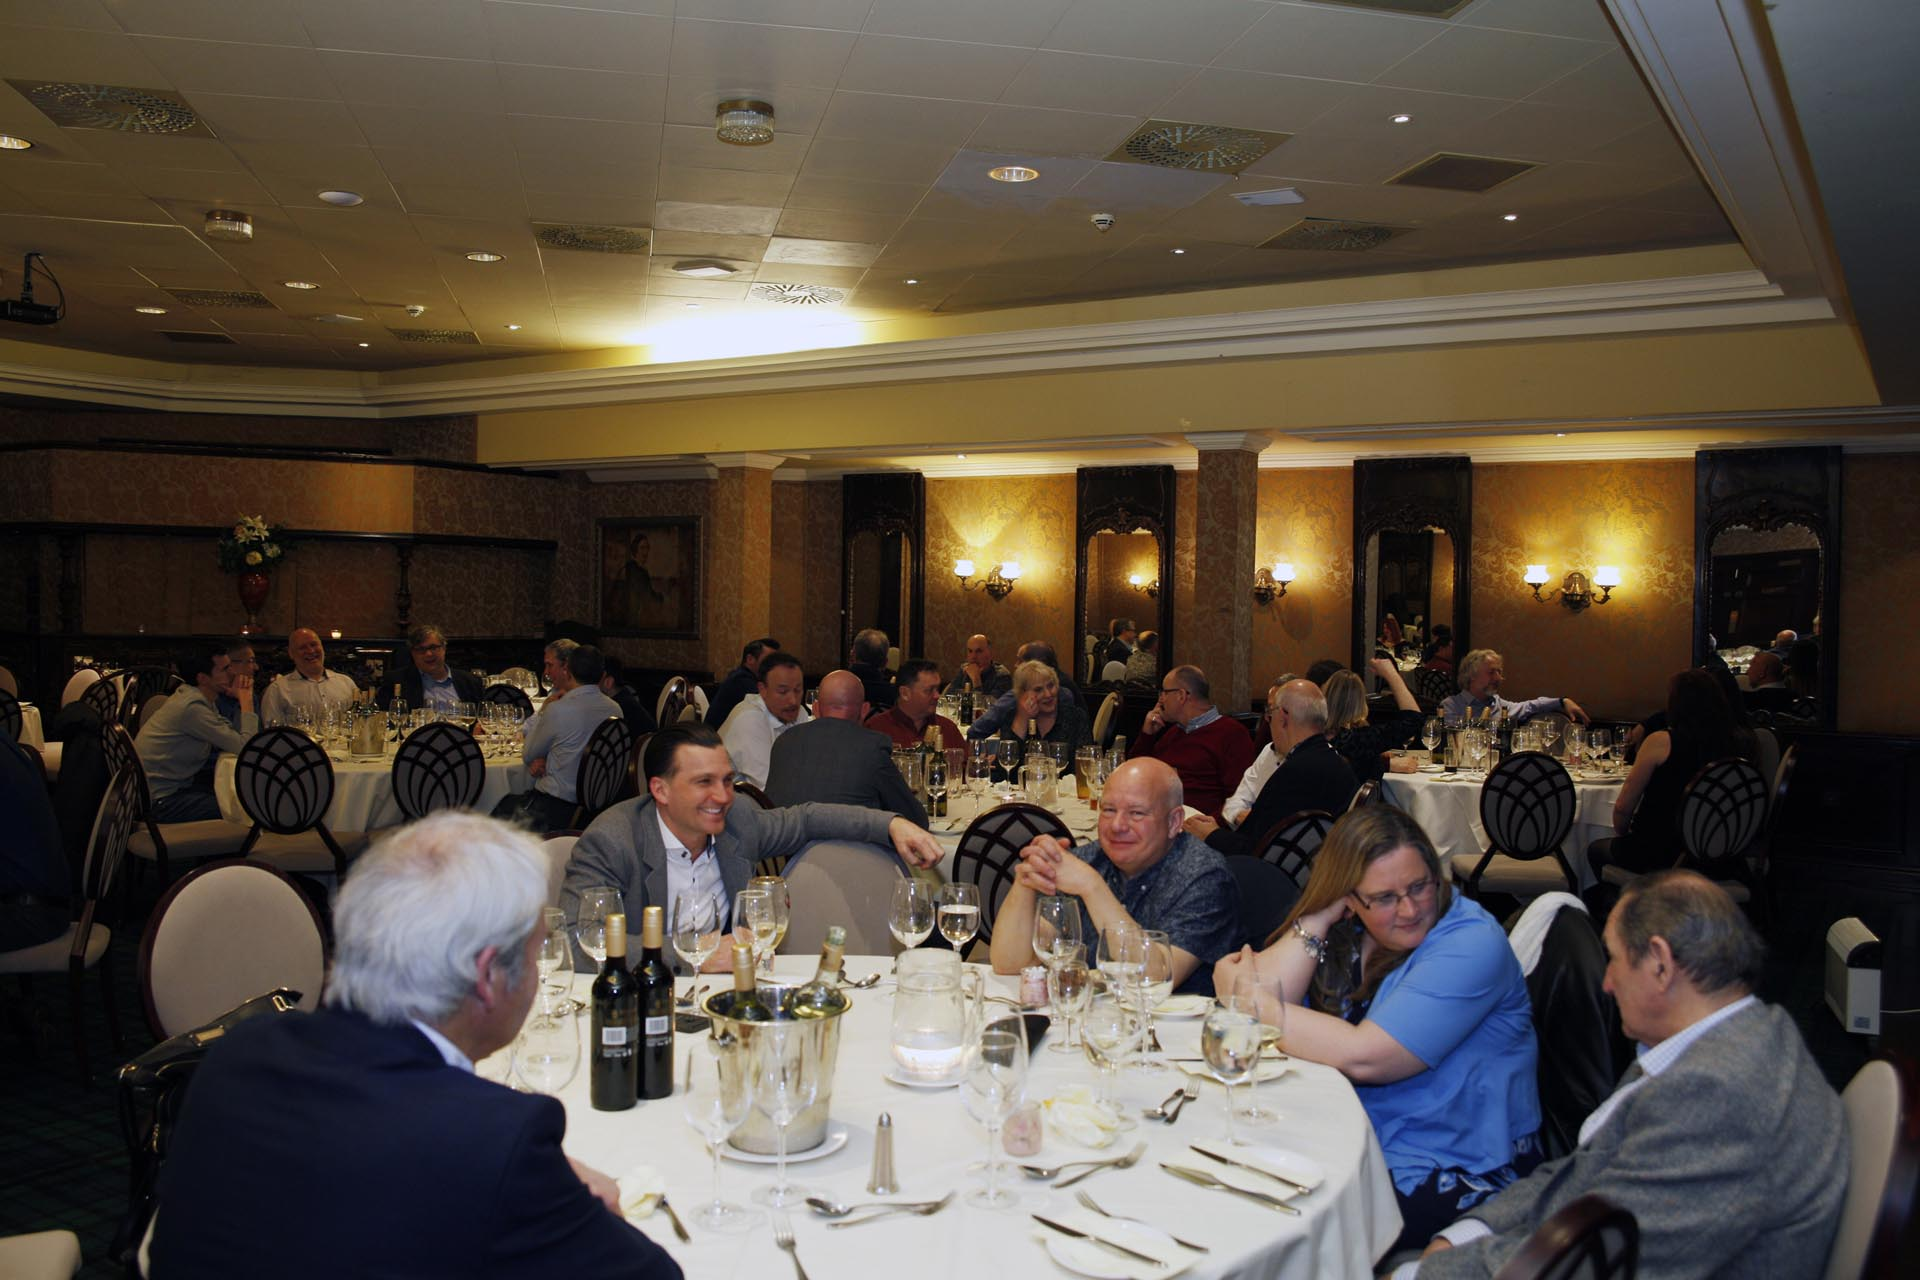 ISCVEx 2020 Networking Dinner Image 32